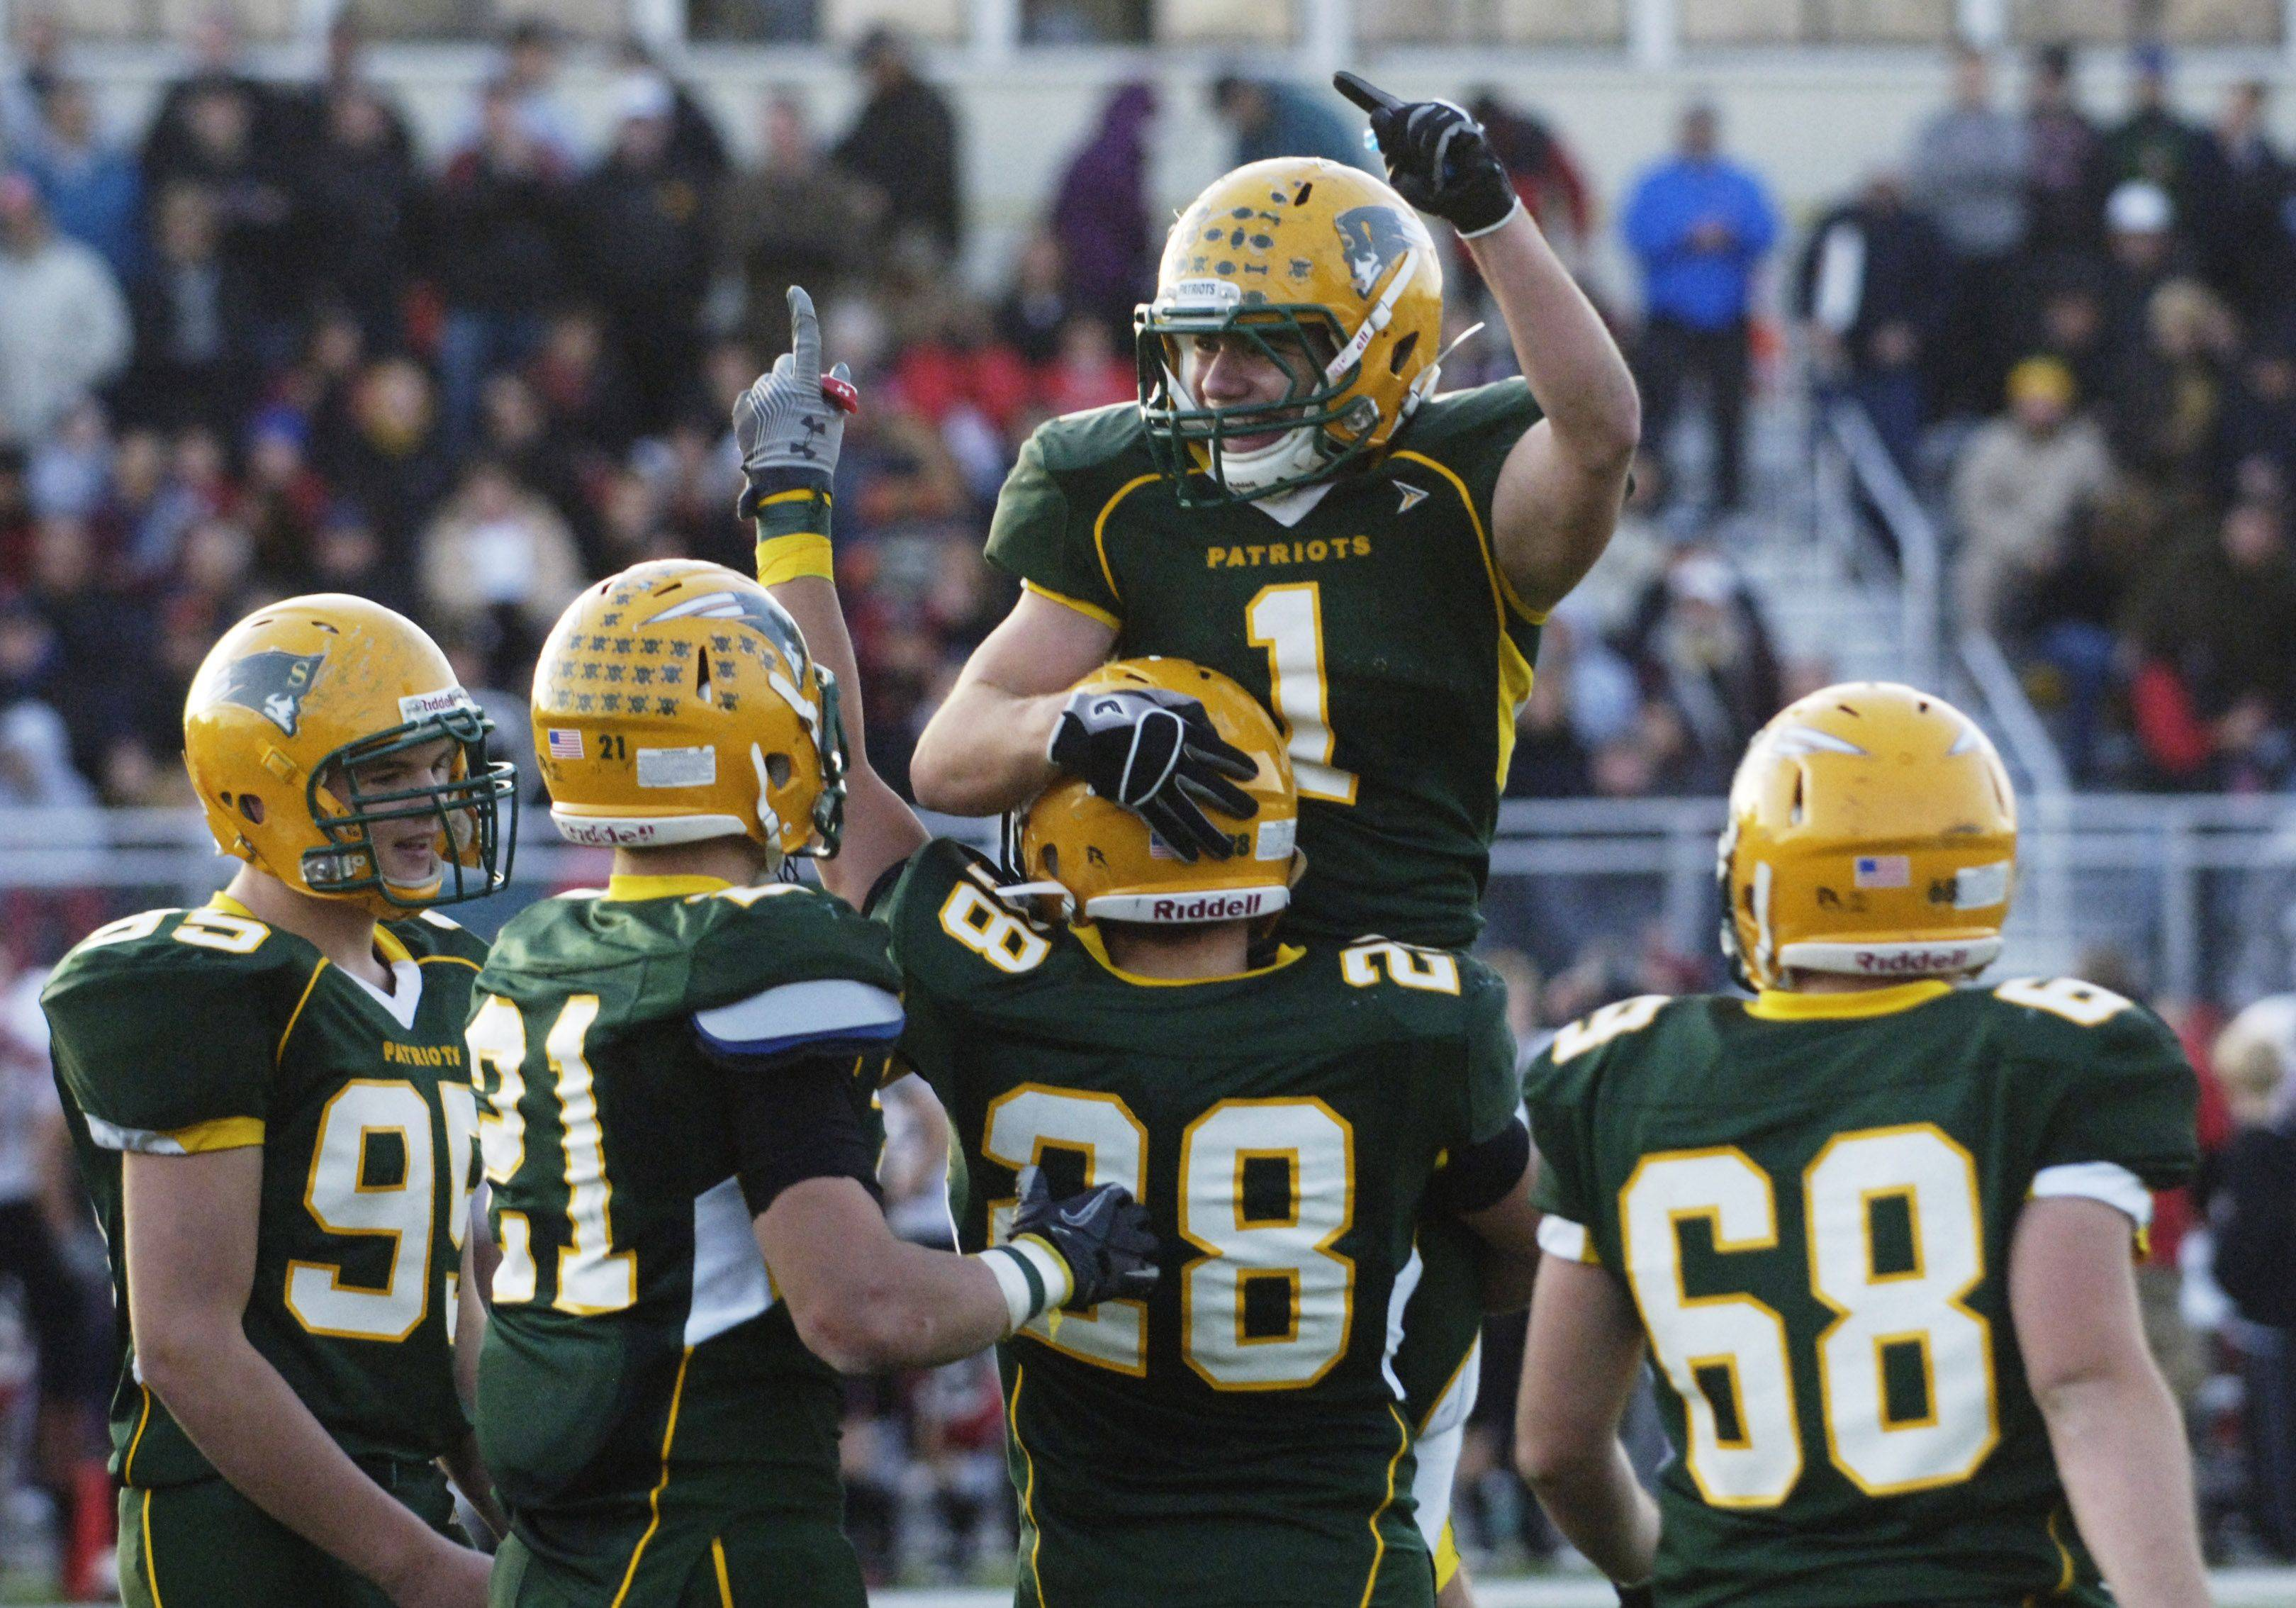 Images: Stevenson vs. Maine South, 8A football playoffs